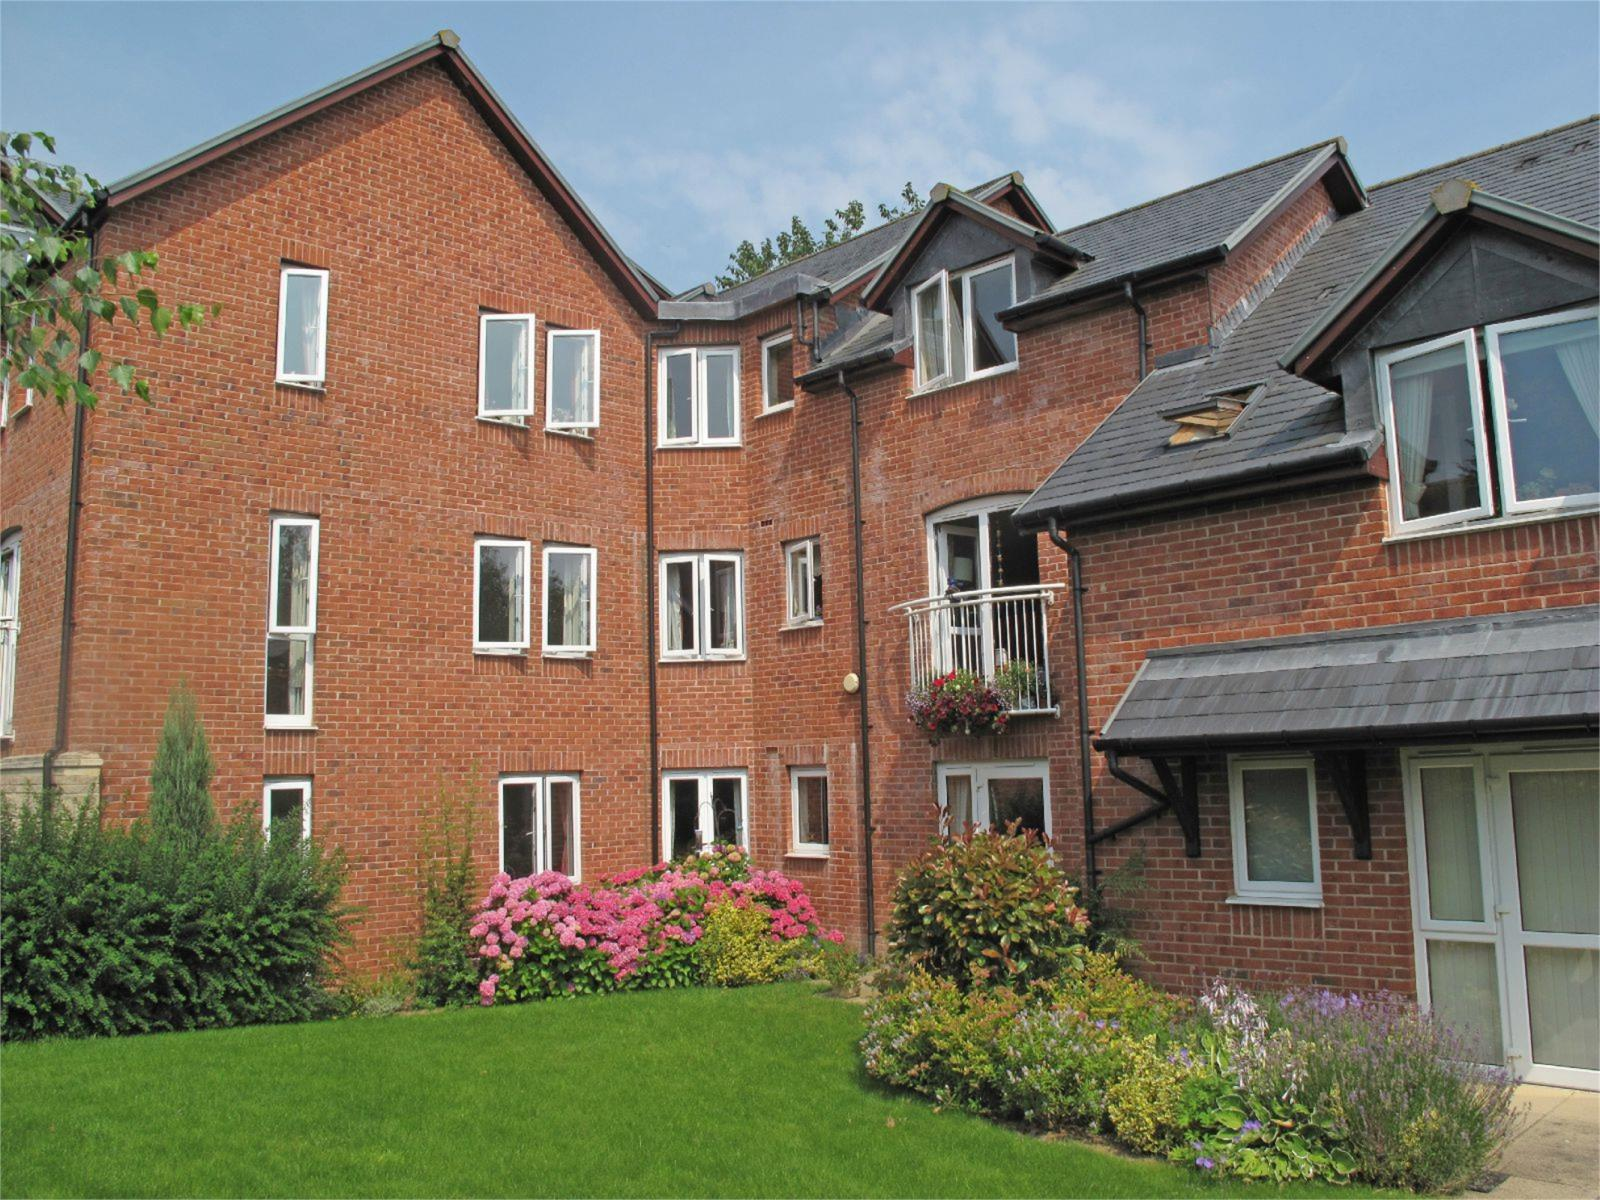 2 Bedrooms Retirement Property for sale in Flat 26, Burgess Court, Gravel Hill, Ludlow, Shropshire, SY8